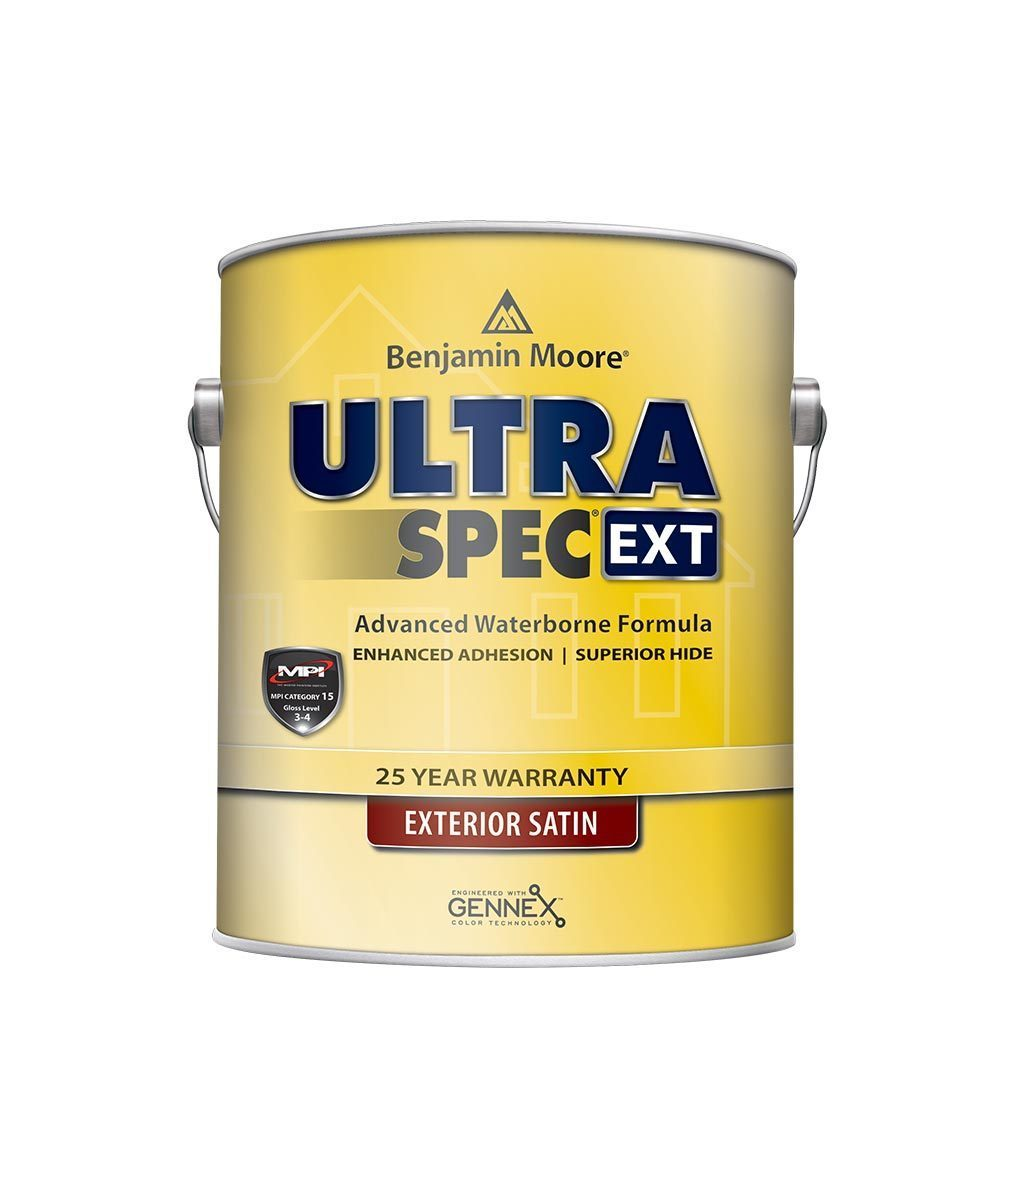 Benjamin Moore Ultra Spec EXT exterior paint in satin finish available at Regal Paint Centers